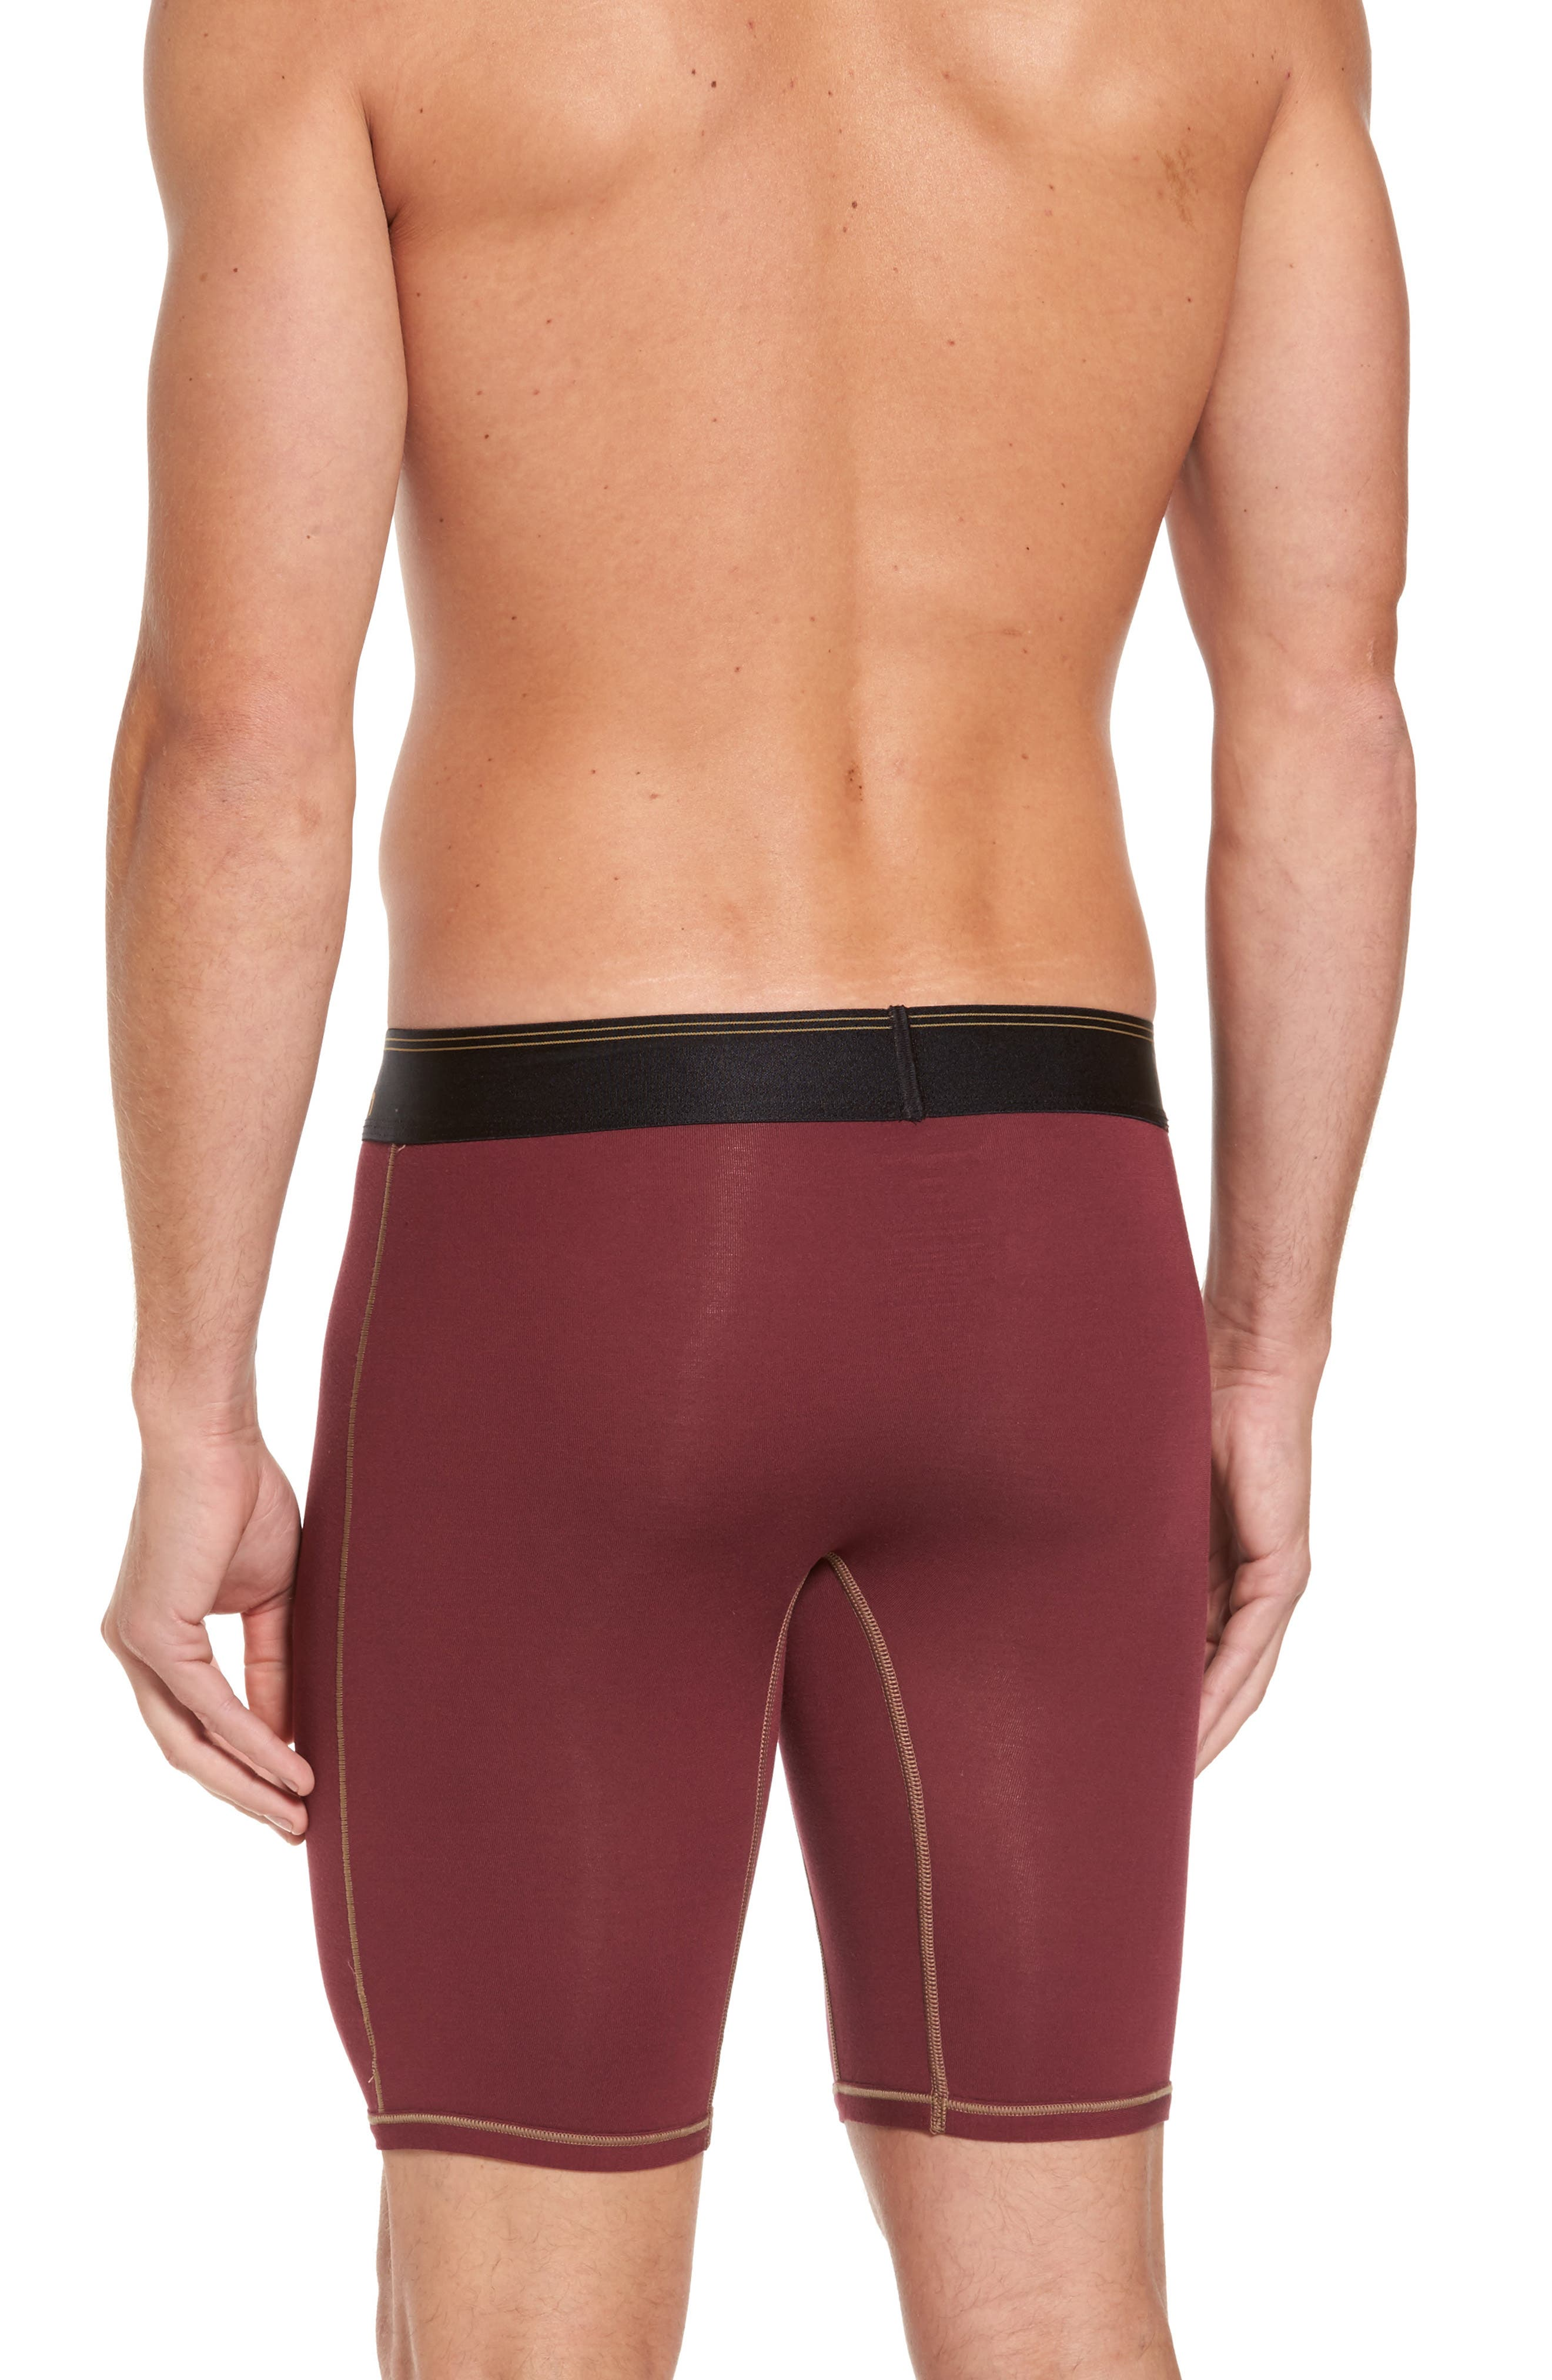 Second Skin Holiday Boxer Briefs,                             Alternate thumbnail 6, color,